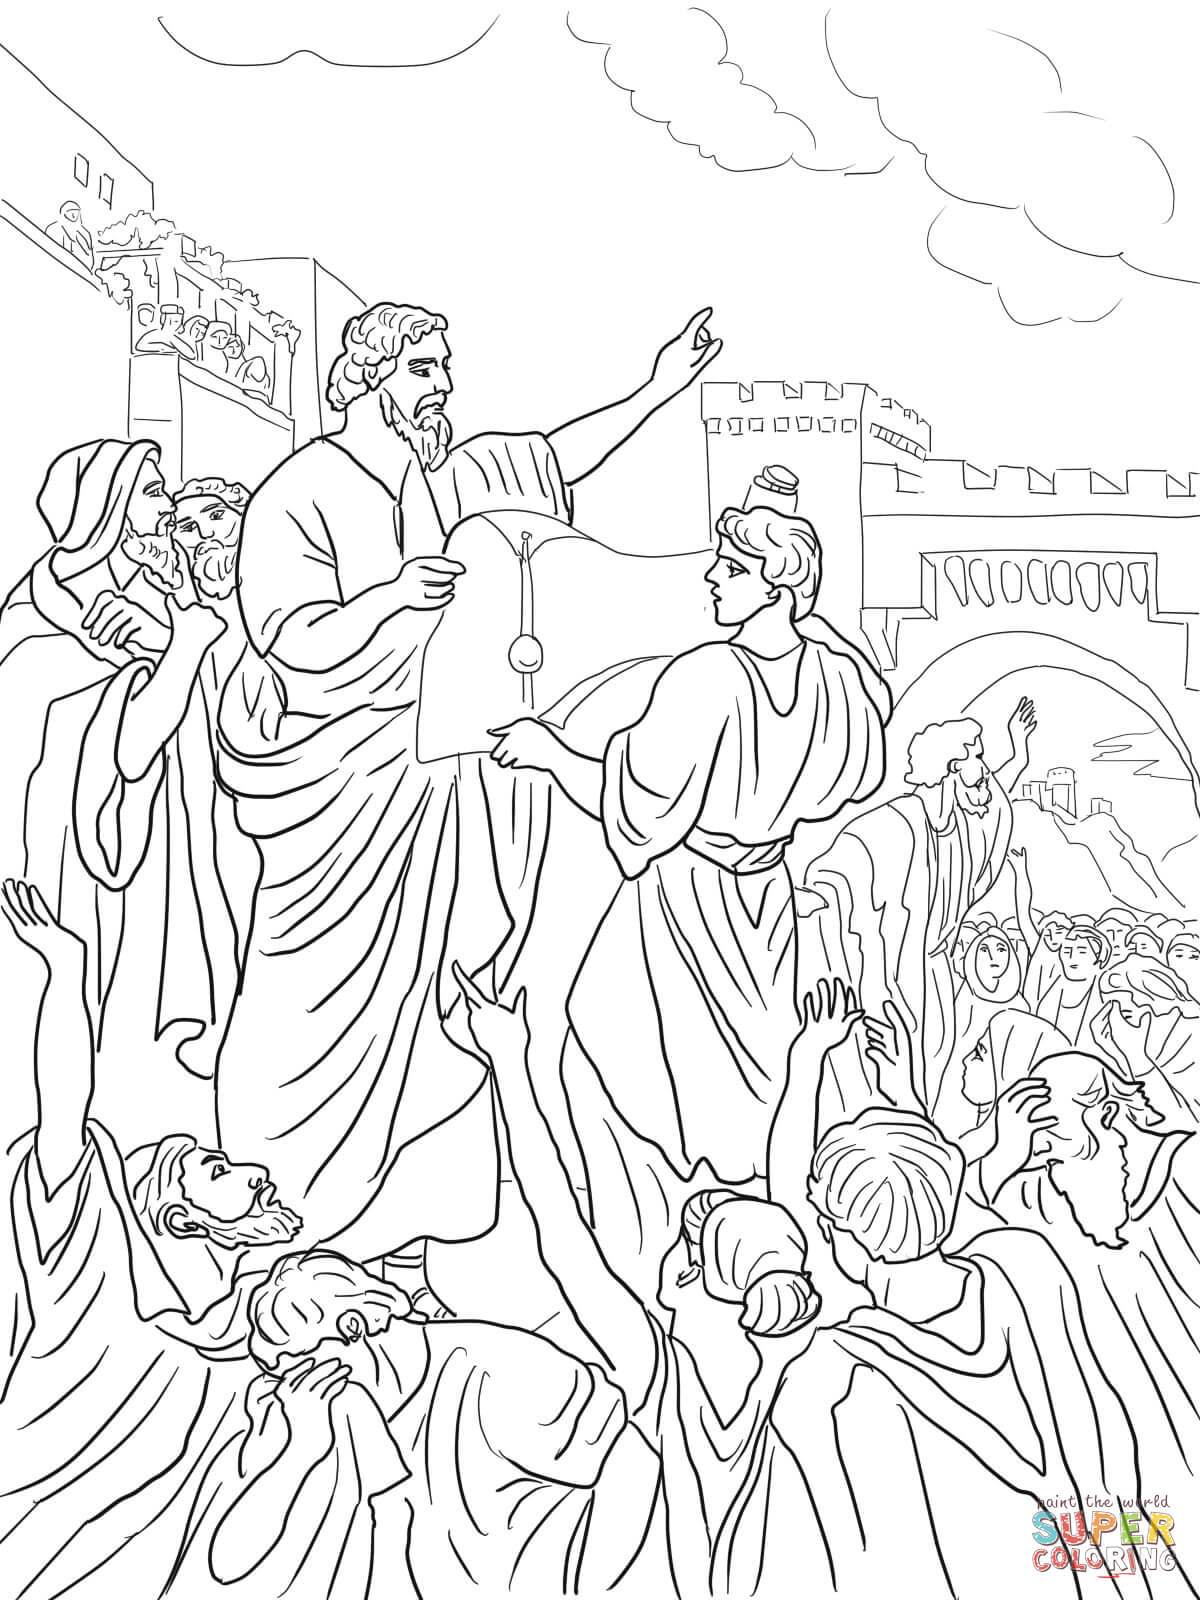 1200x1600 Nehemiah Coloring Page Coloring Pages Designs Nehemiah Coloring